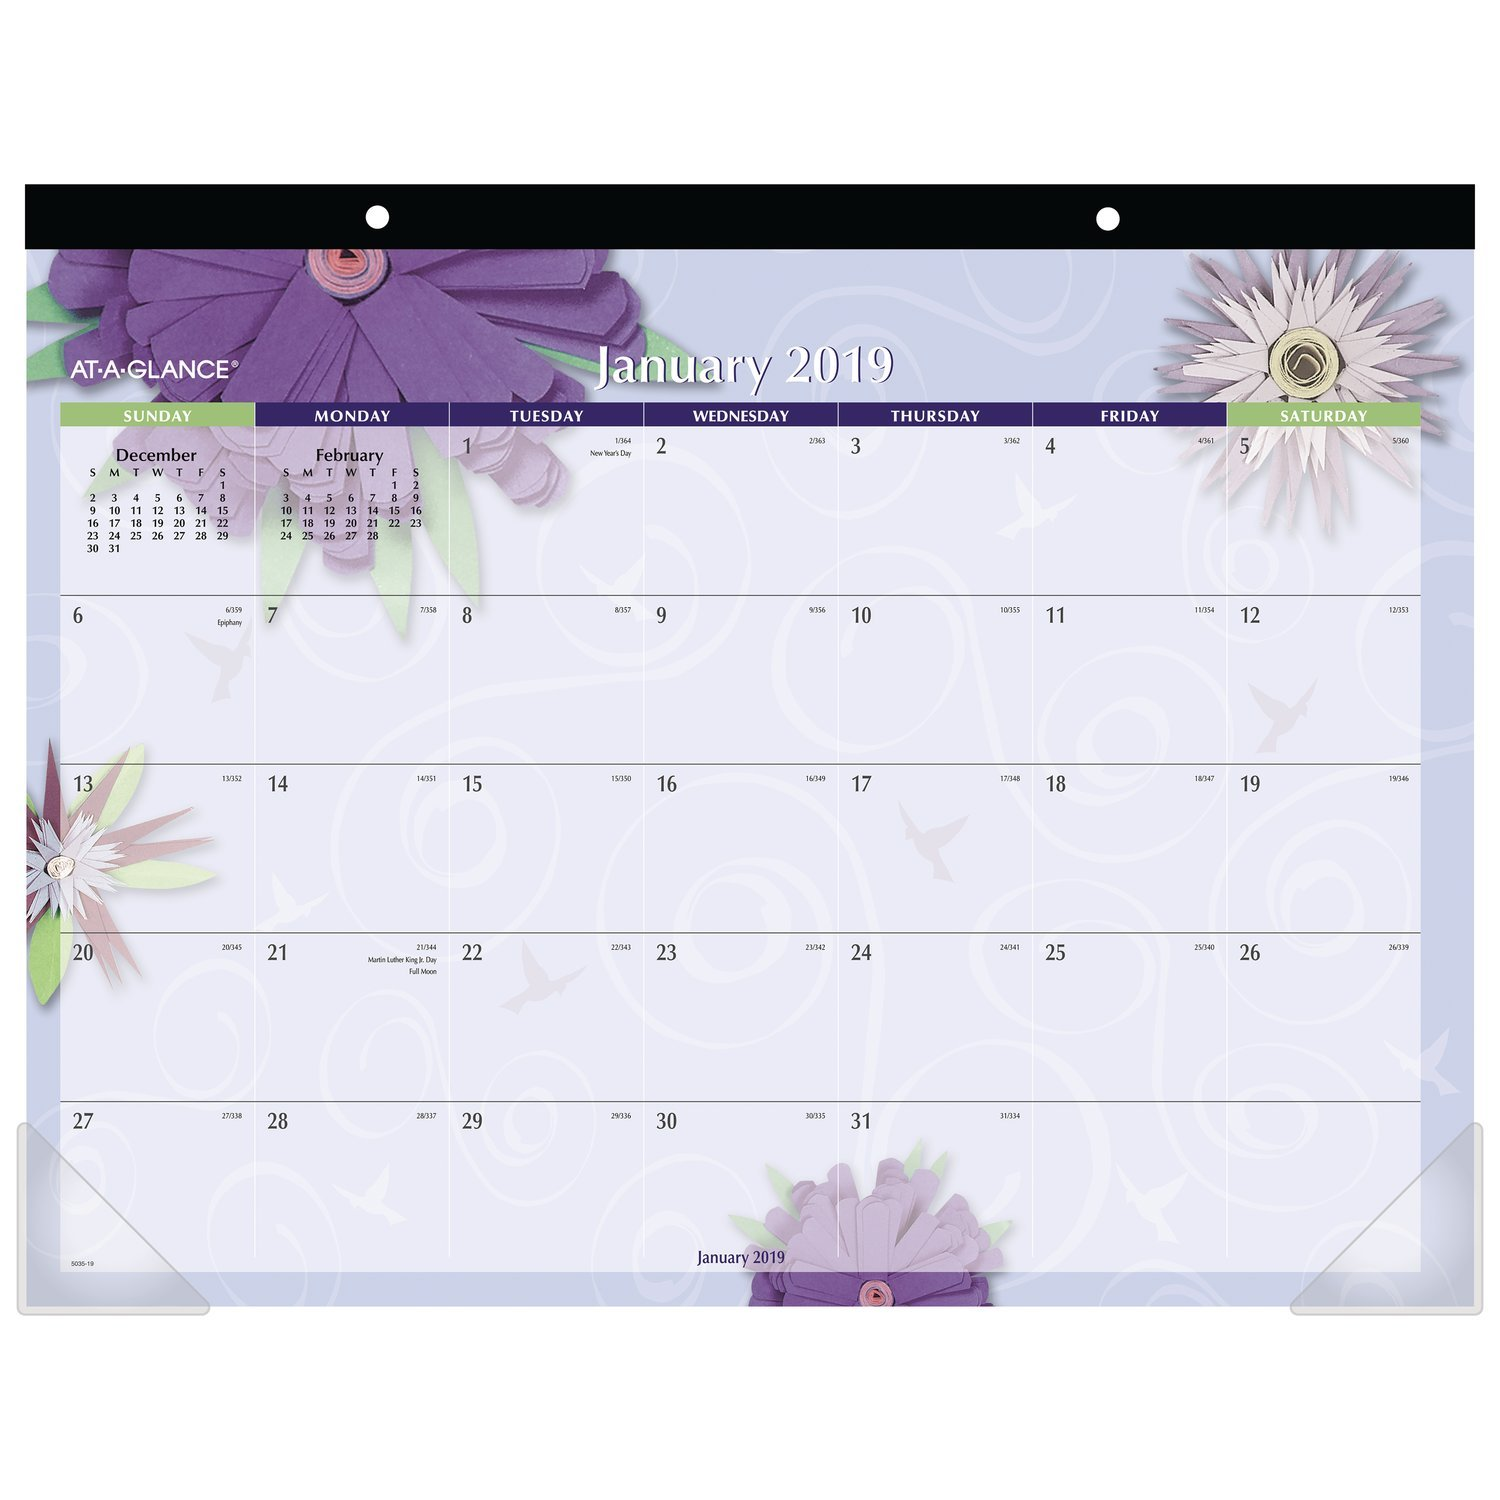 AT-A-GLANCE 2019 Desk Calendar, Desk Pad, 21-3/4'' x 17'', Standard, Paper Flowers (5035) by AT-A-GLANCE